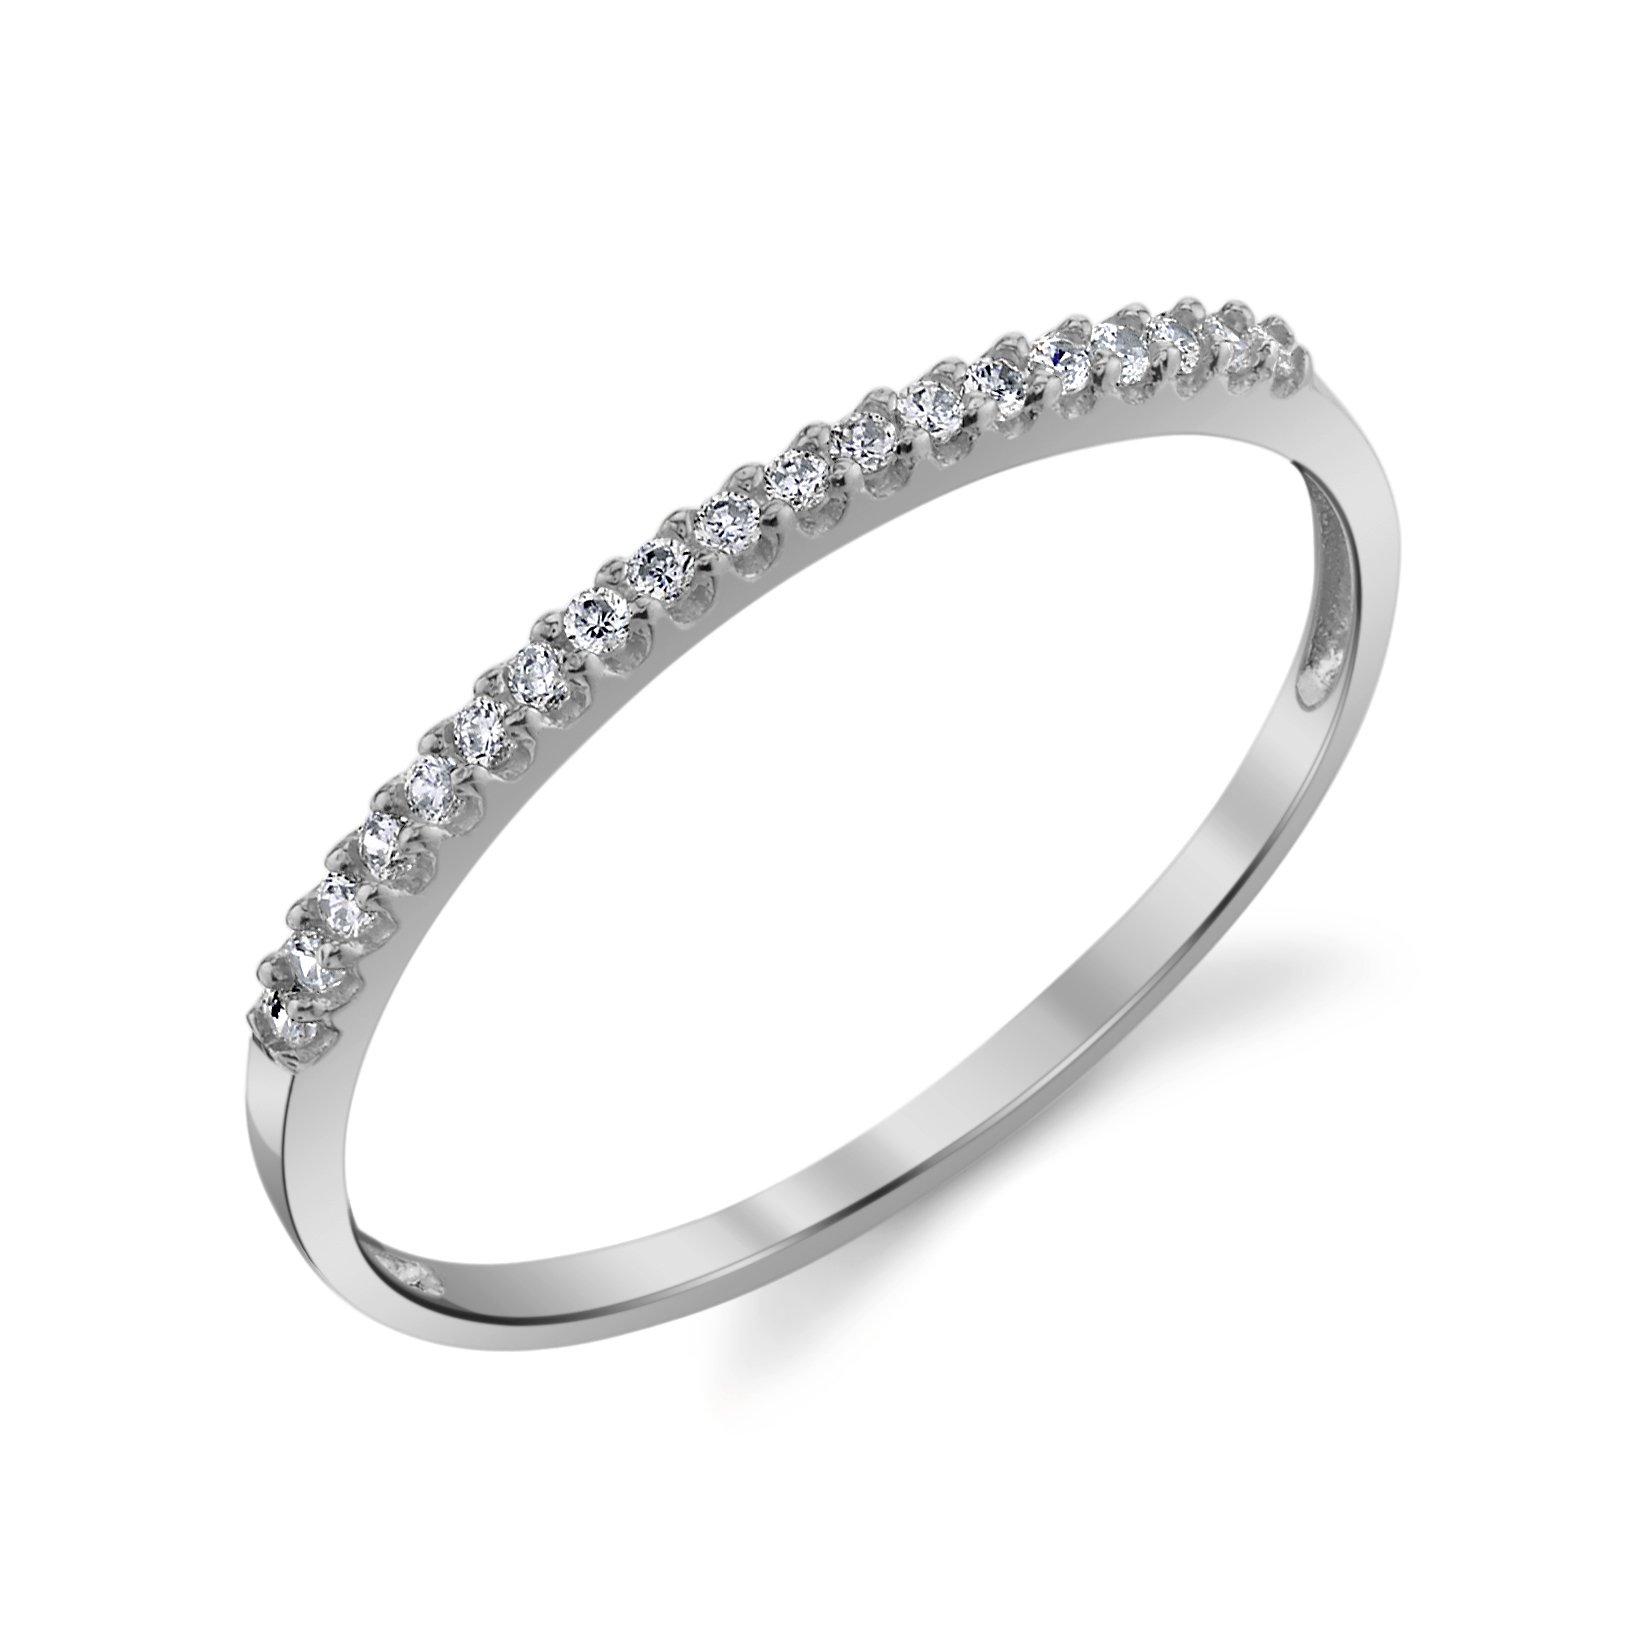 10k White Gold Lightweight Dainty CZ Wedding Stackable Band Size 8.5